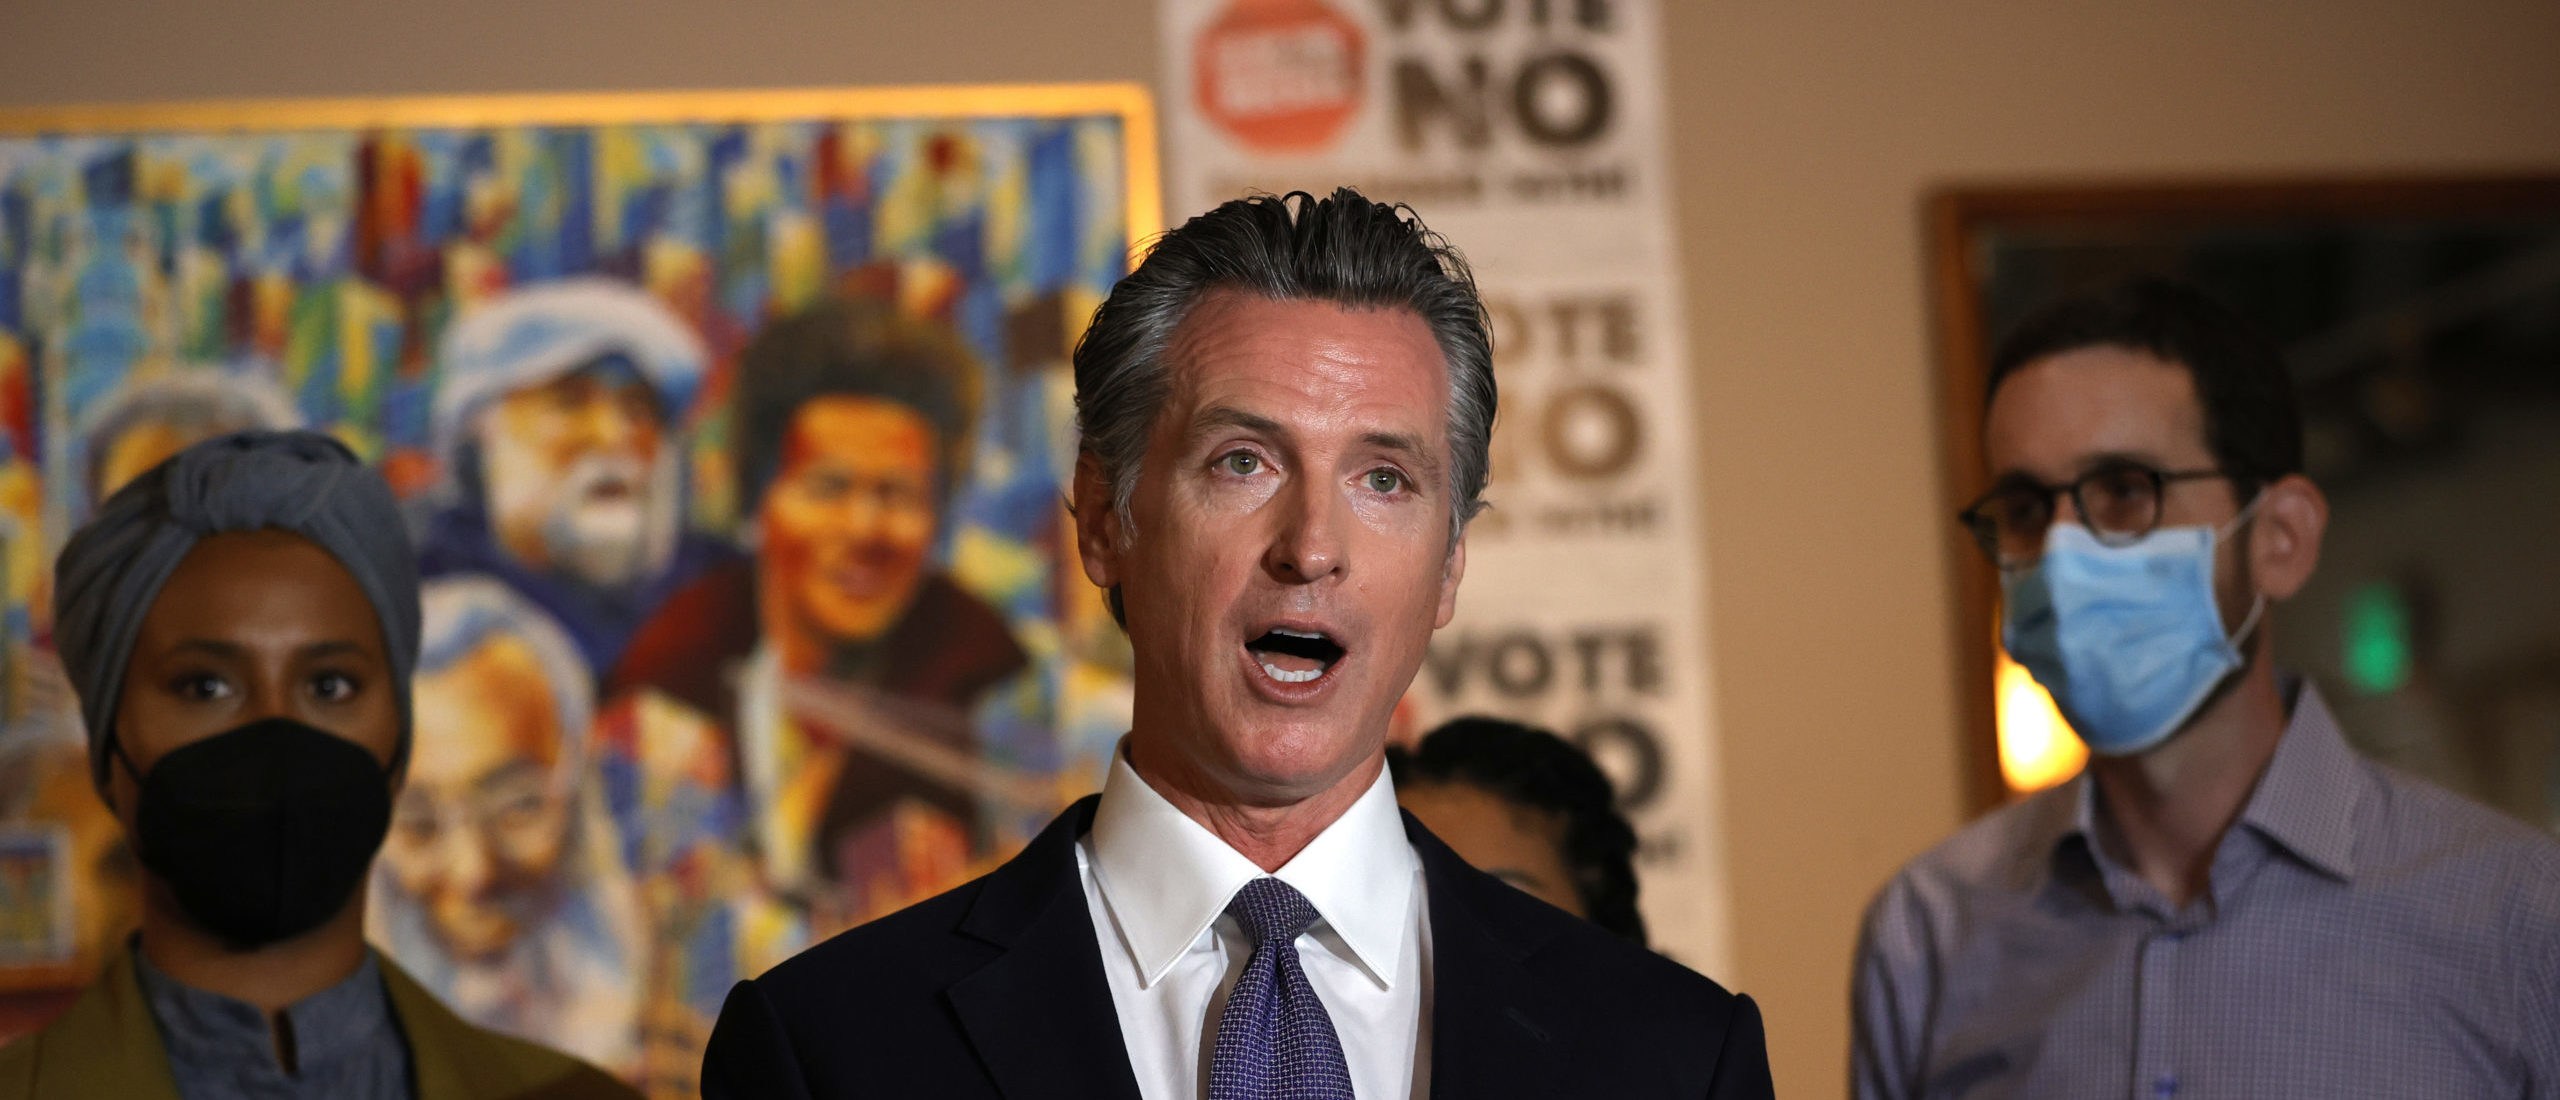 SAN FRANCISCO, CALIFORNIA - AUGUST 13: California Gov. Gavin Newsom speaks during a news conference at Manny's on August 13, 2021 in San Francisco, California. (Photo by Justin Sullivan/Getty Images)